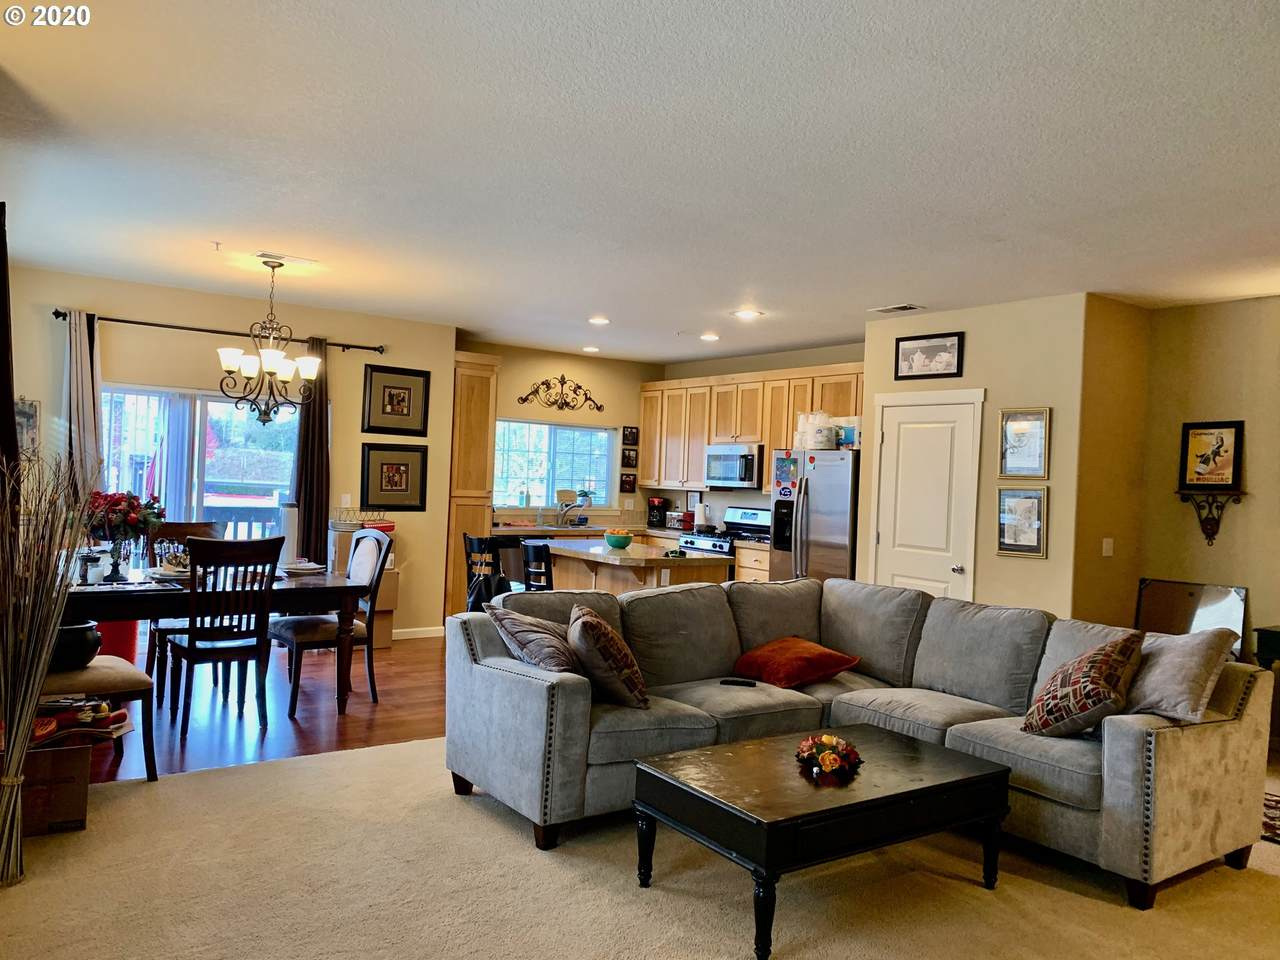 https://bt-photos.global.ssl.fastly.net/portland/1280_boomver_1_20258245-2.jpg